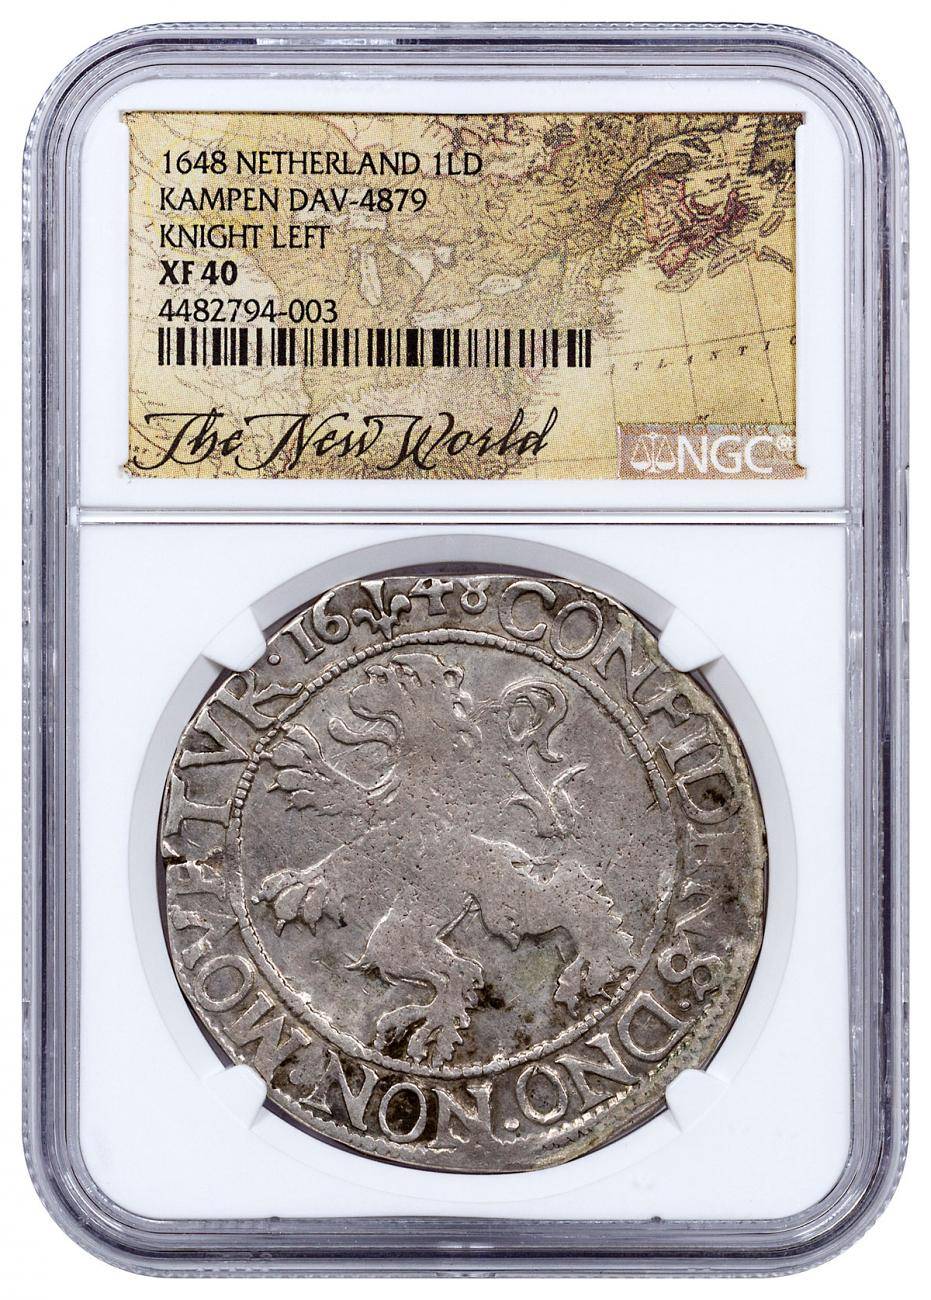 1648 Netherlands Silver 1 New York Lion Dollar NGC XF40 Exclusive New World Label